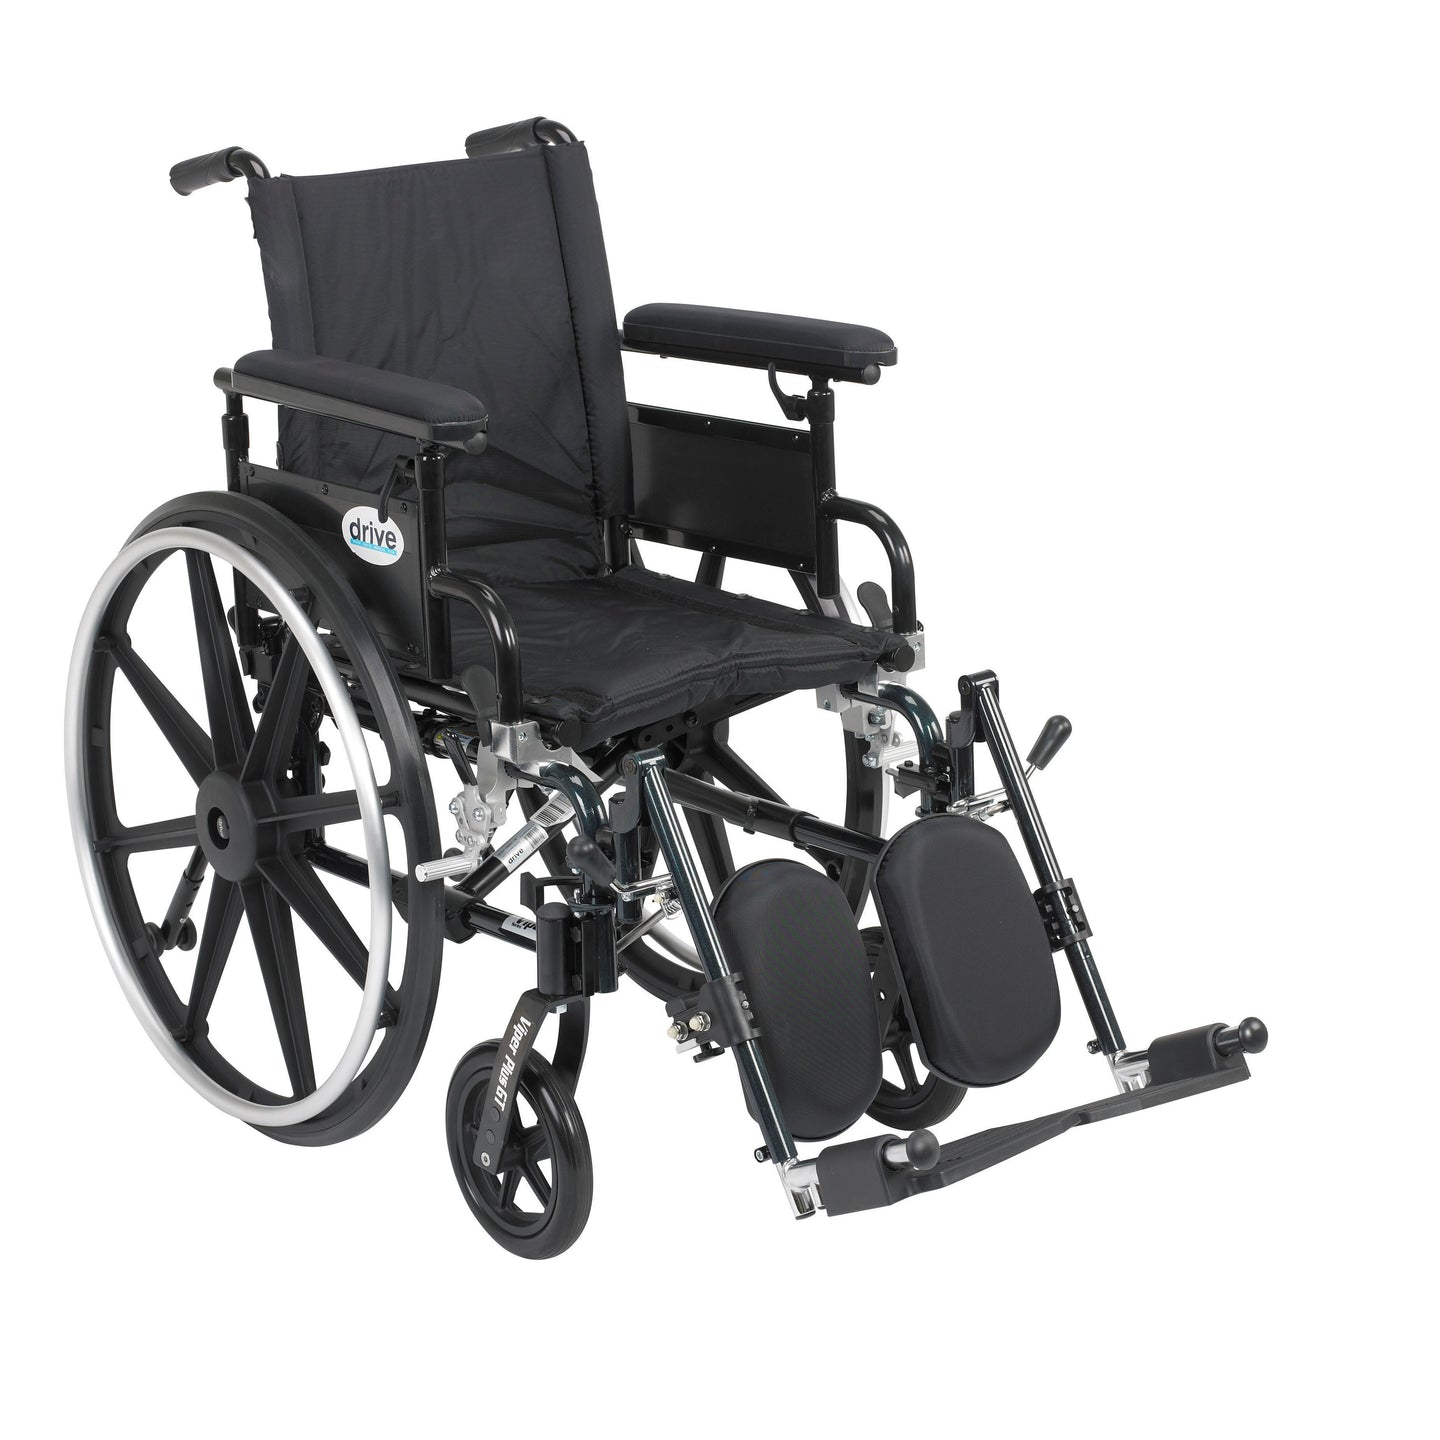 Drive Viper Plus GT Wheelchair with Flip Back Removable Adjustable Full Arms- Elevating Leg Rests- 16